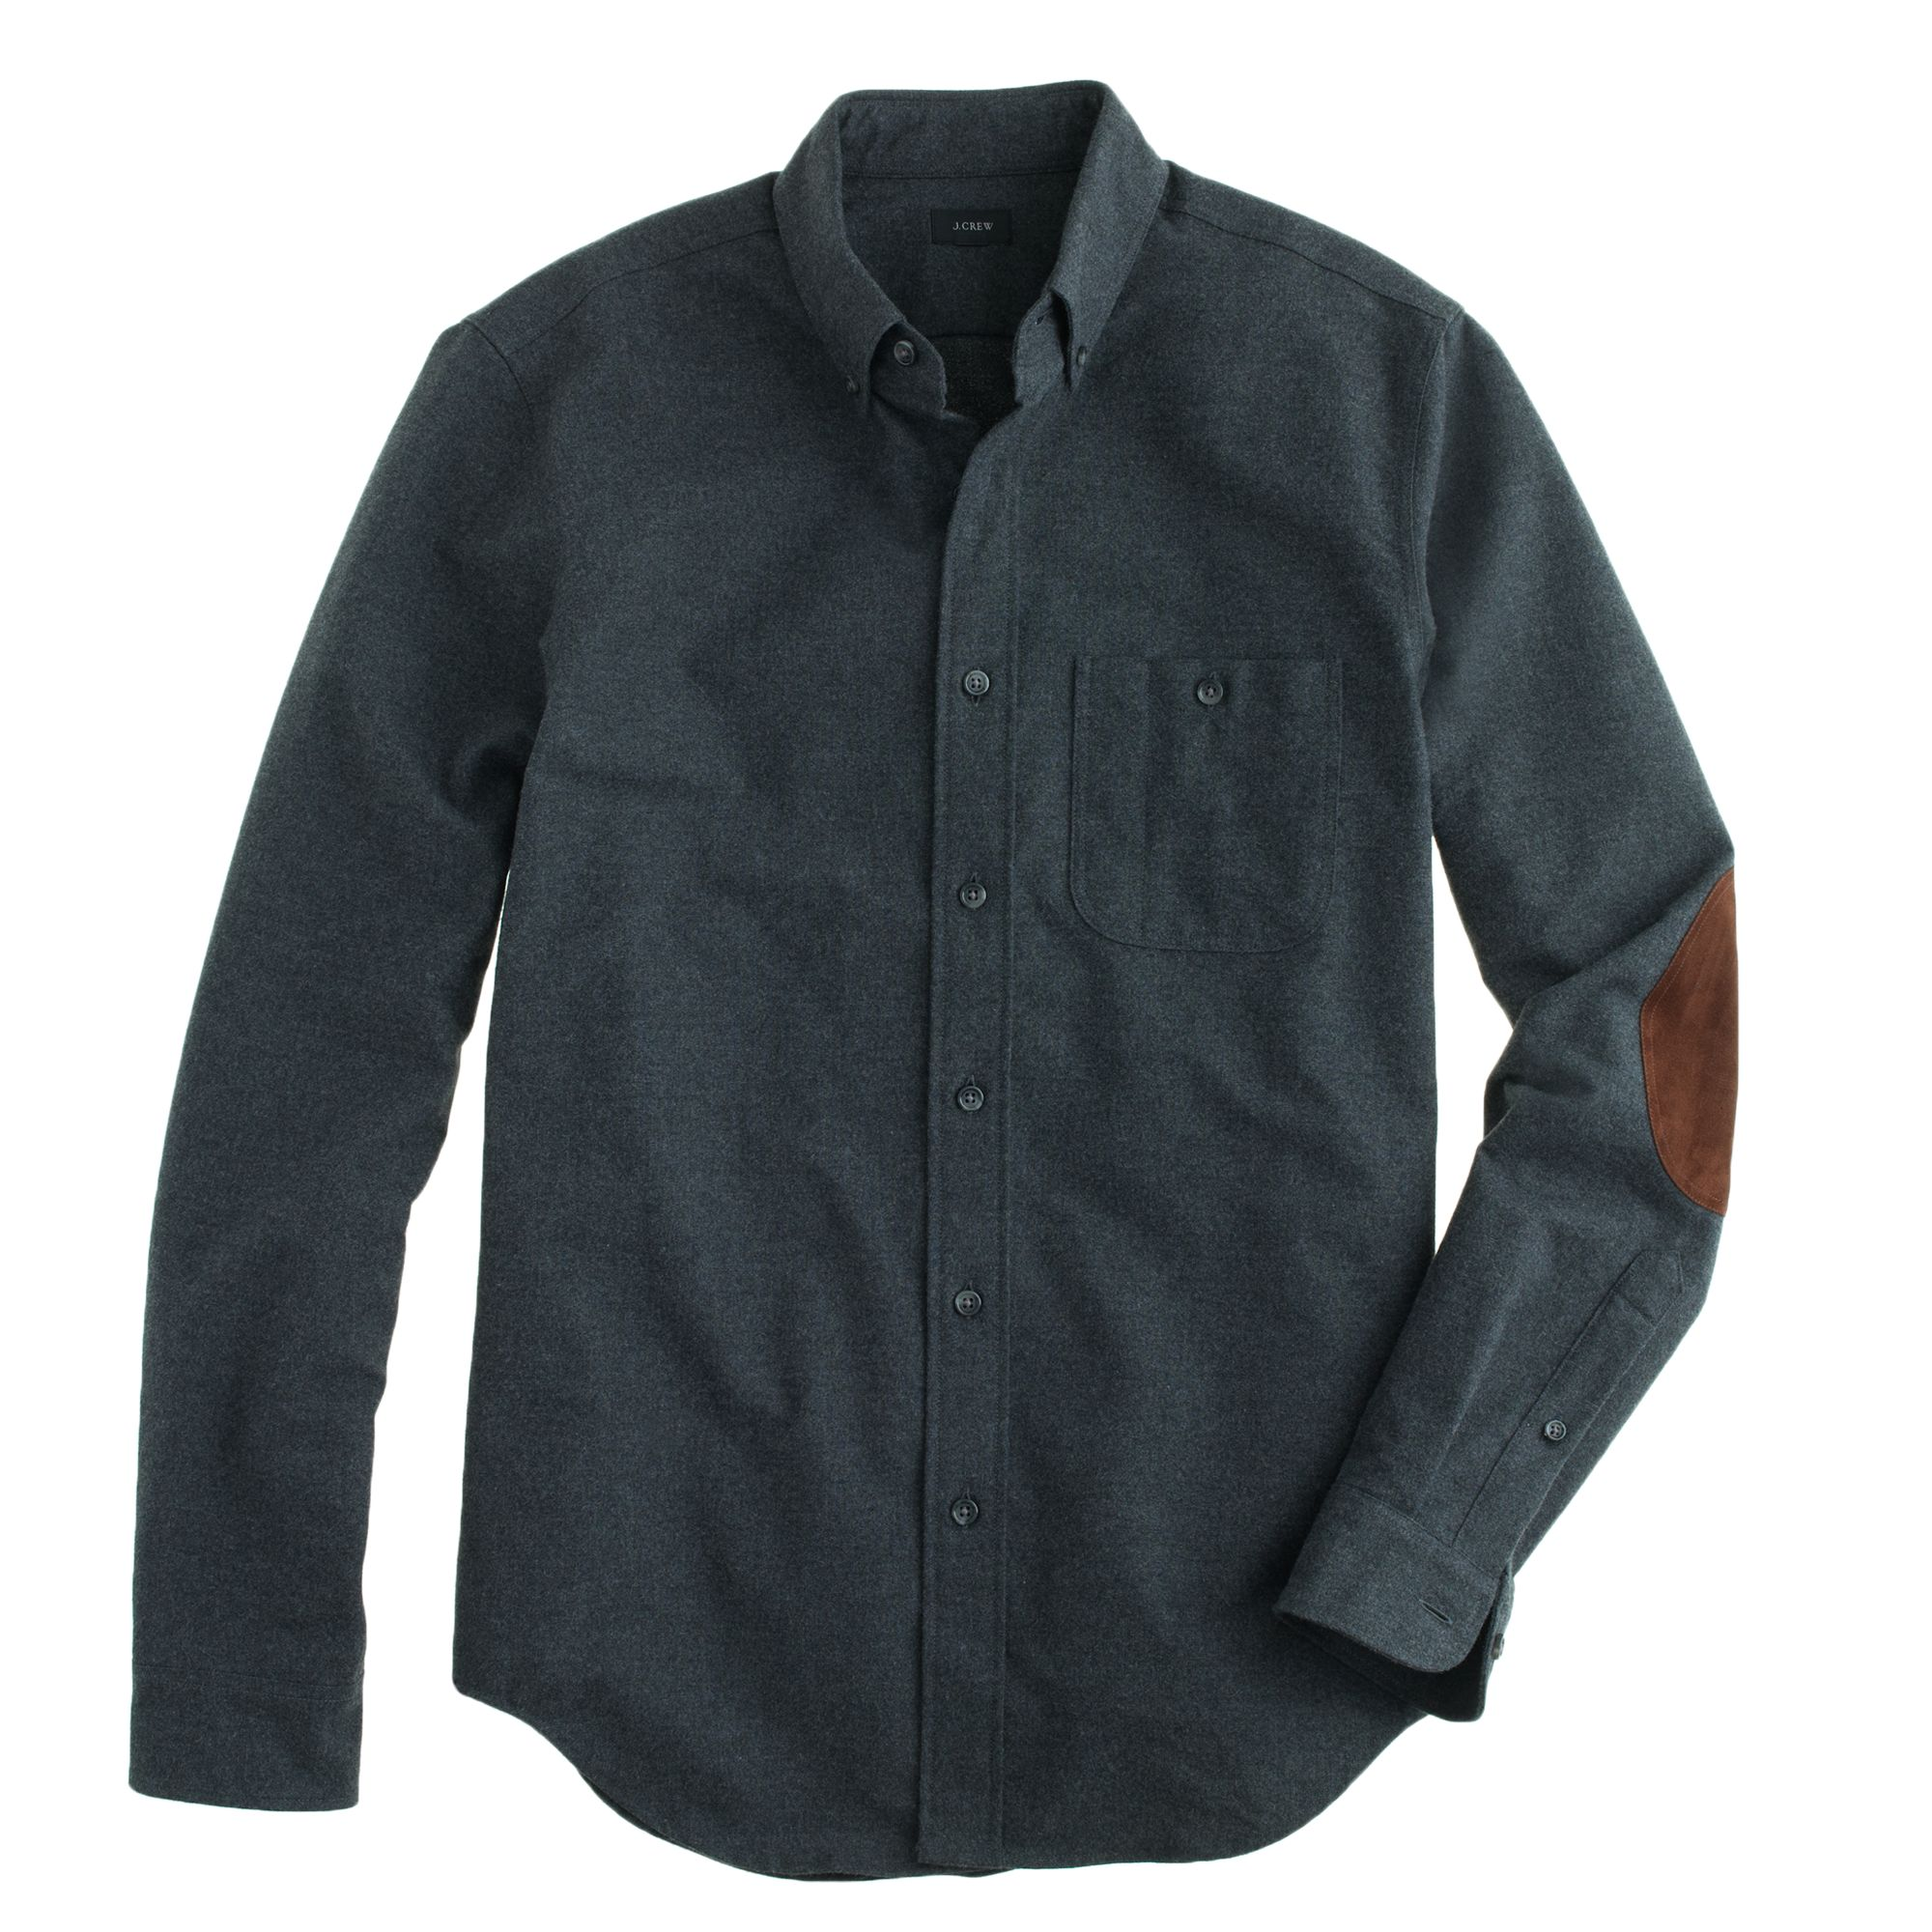 Tall Heathered Chamois Elbow Patch Shirt In Gray